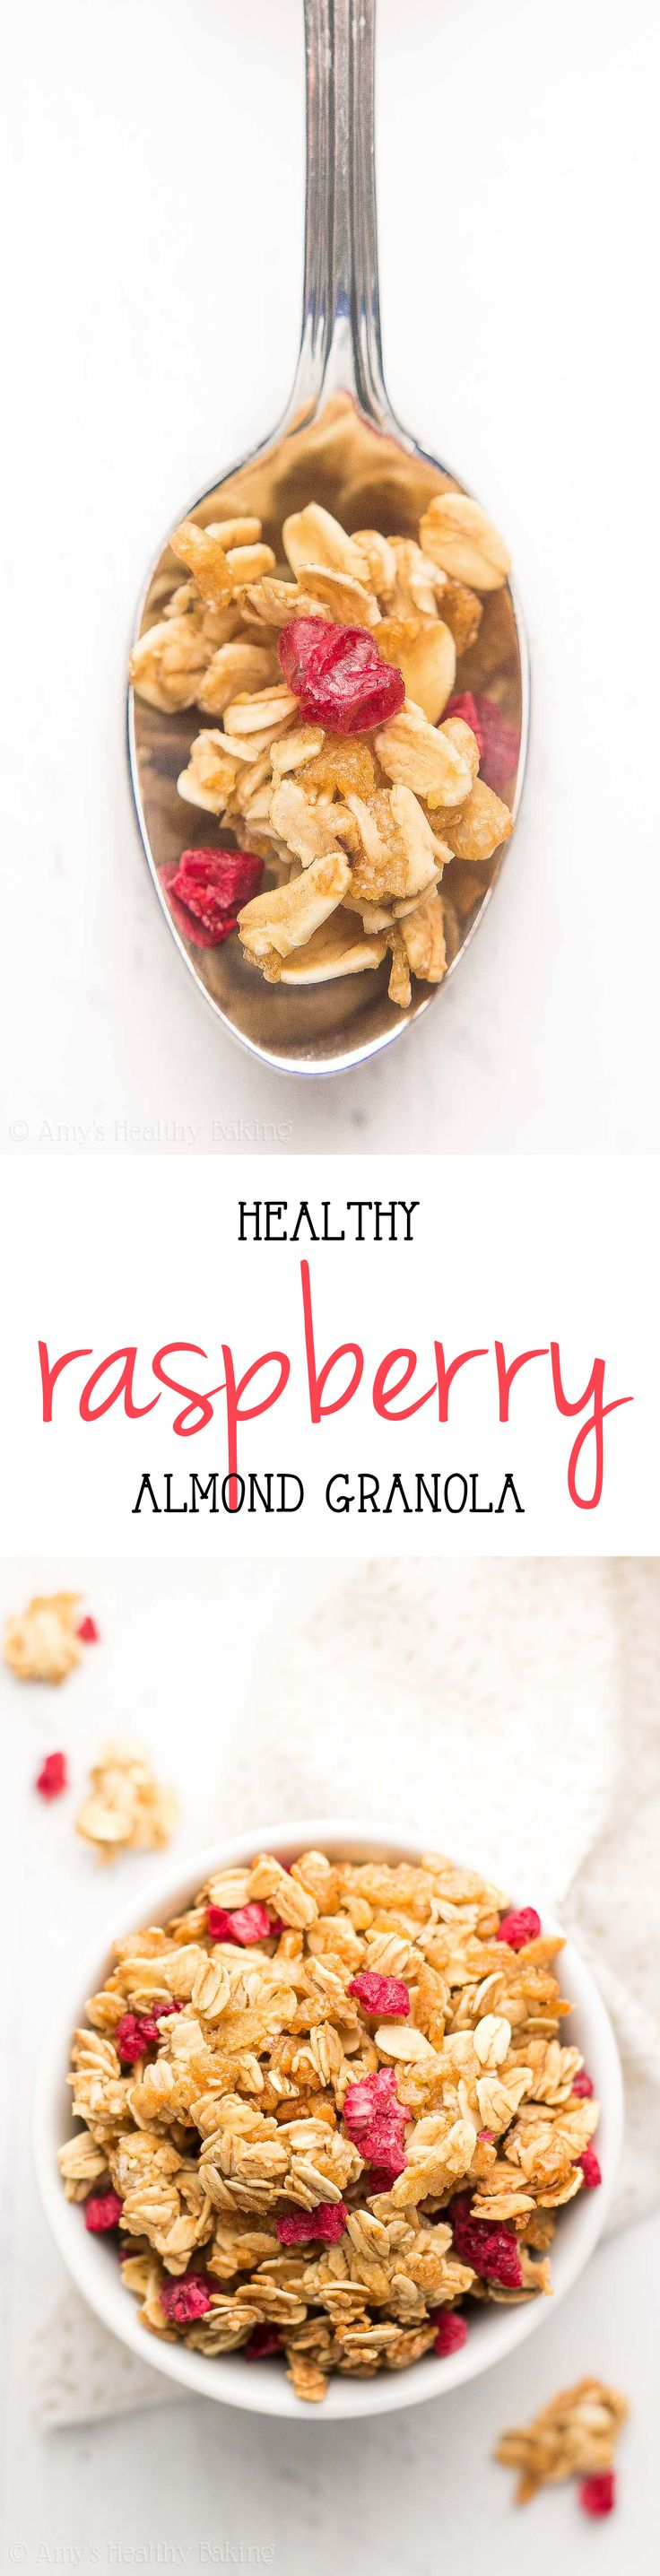 Easy & Healthy Raspberry Almond Granola -- only 6 ingredients! Plus a SECRET TRICK to making extra big & crunchy clusters!